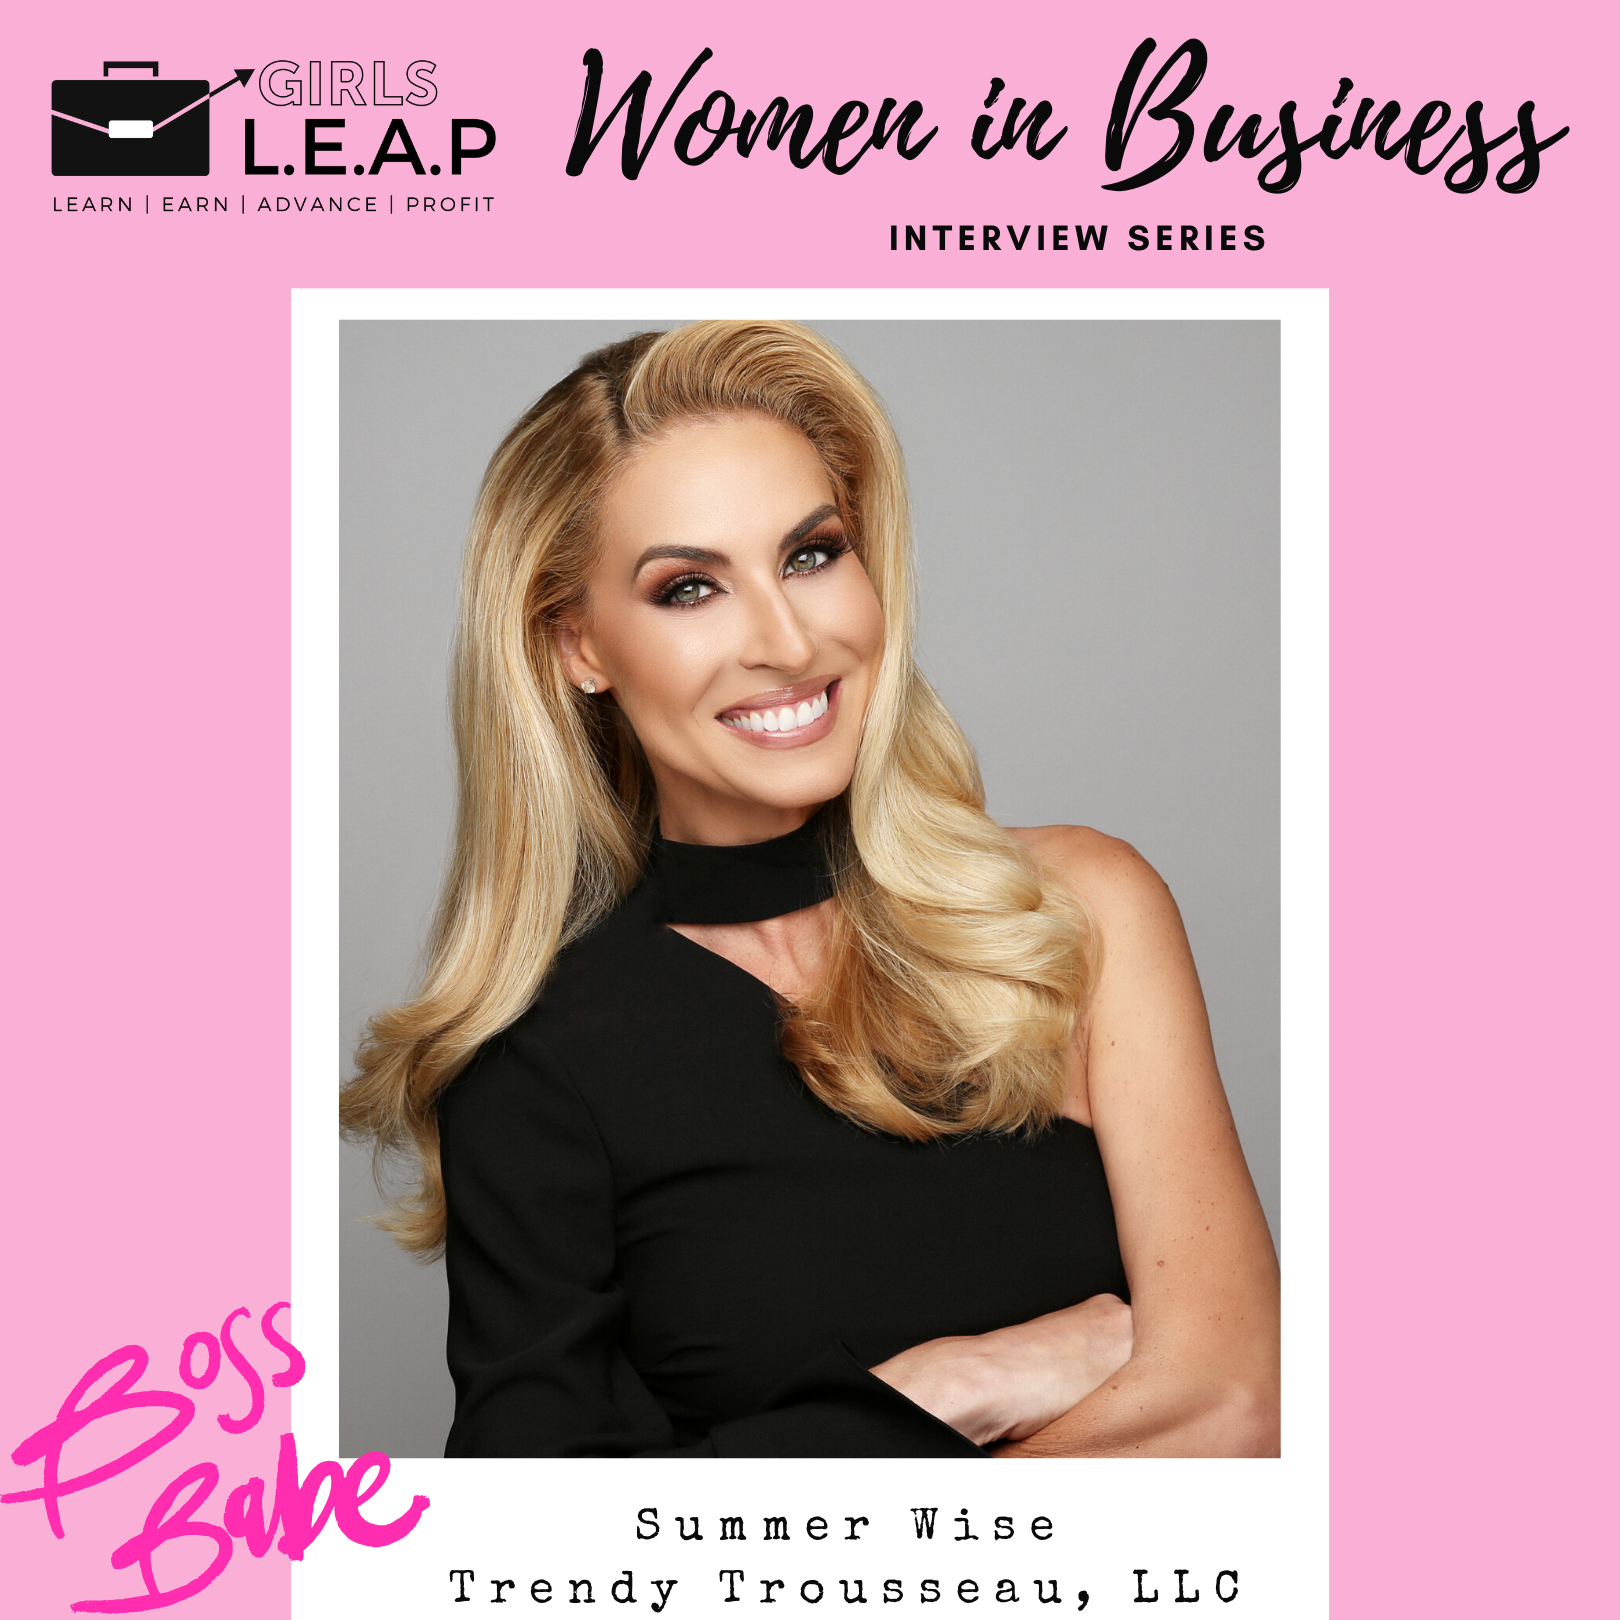 Women in Business Wednesdays: Summer Wise